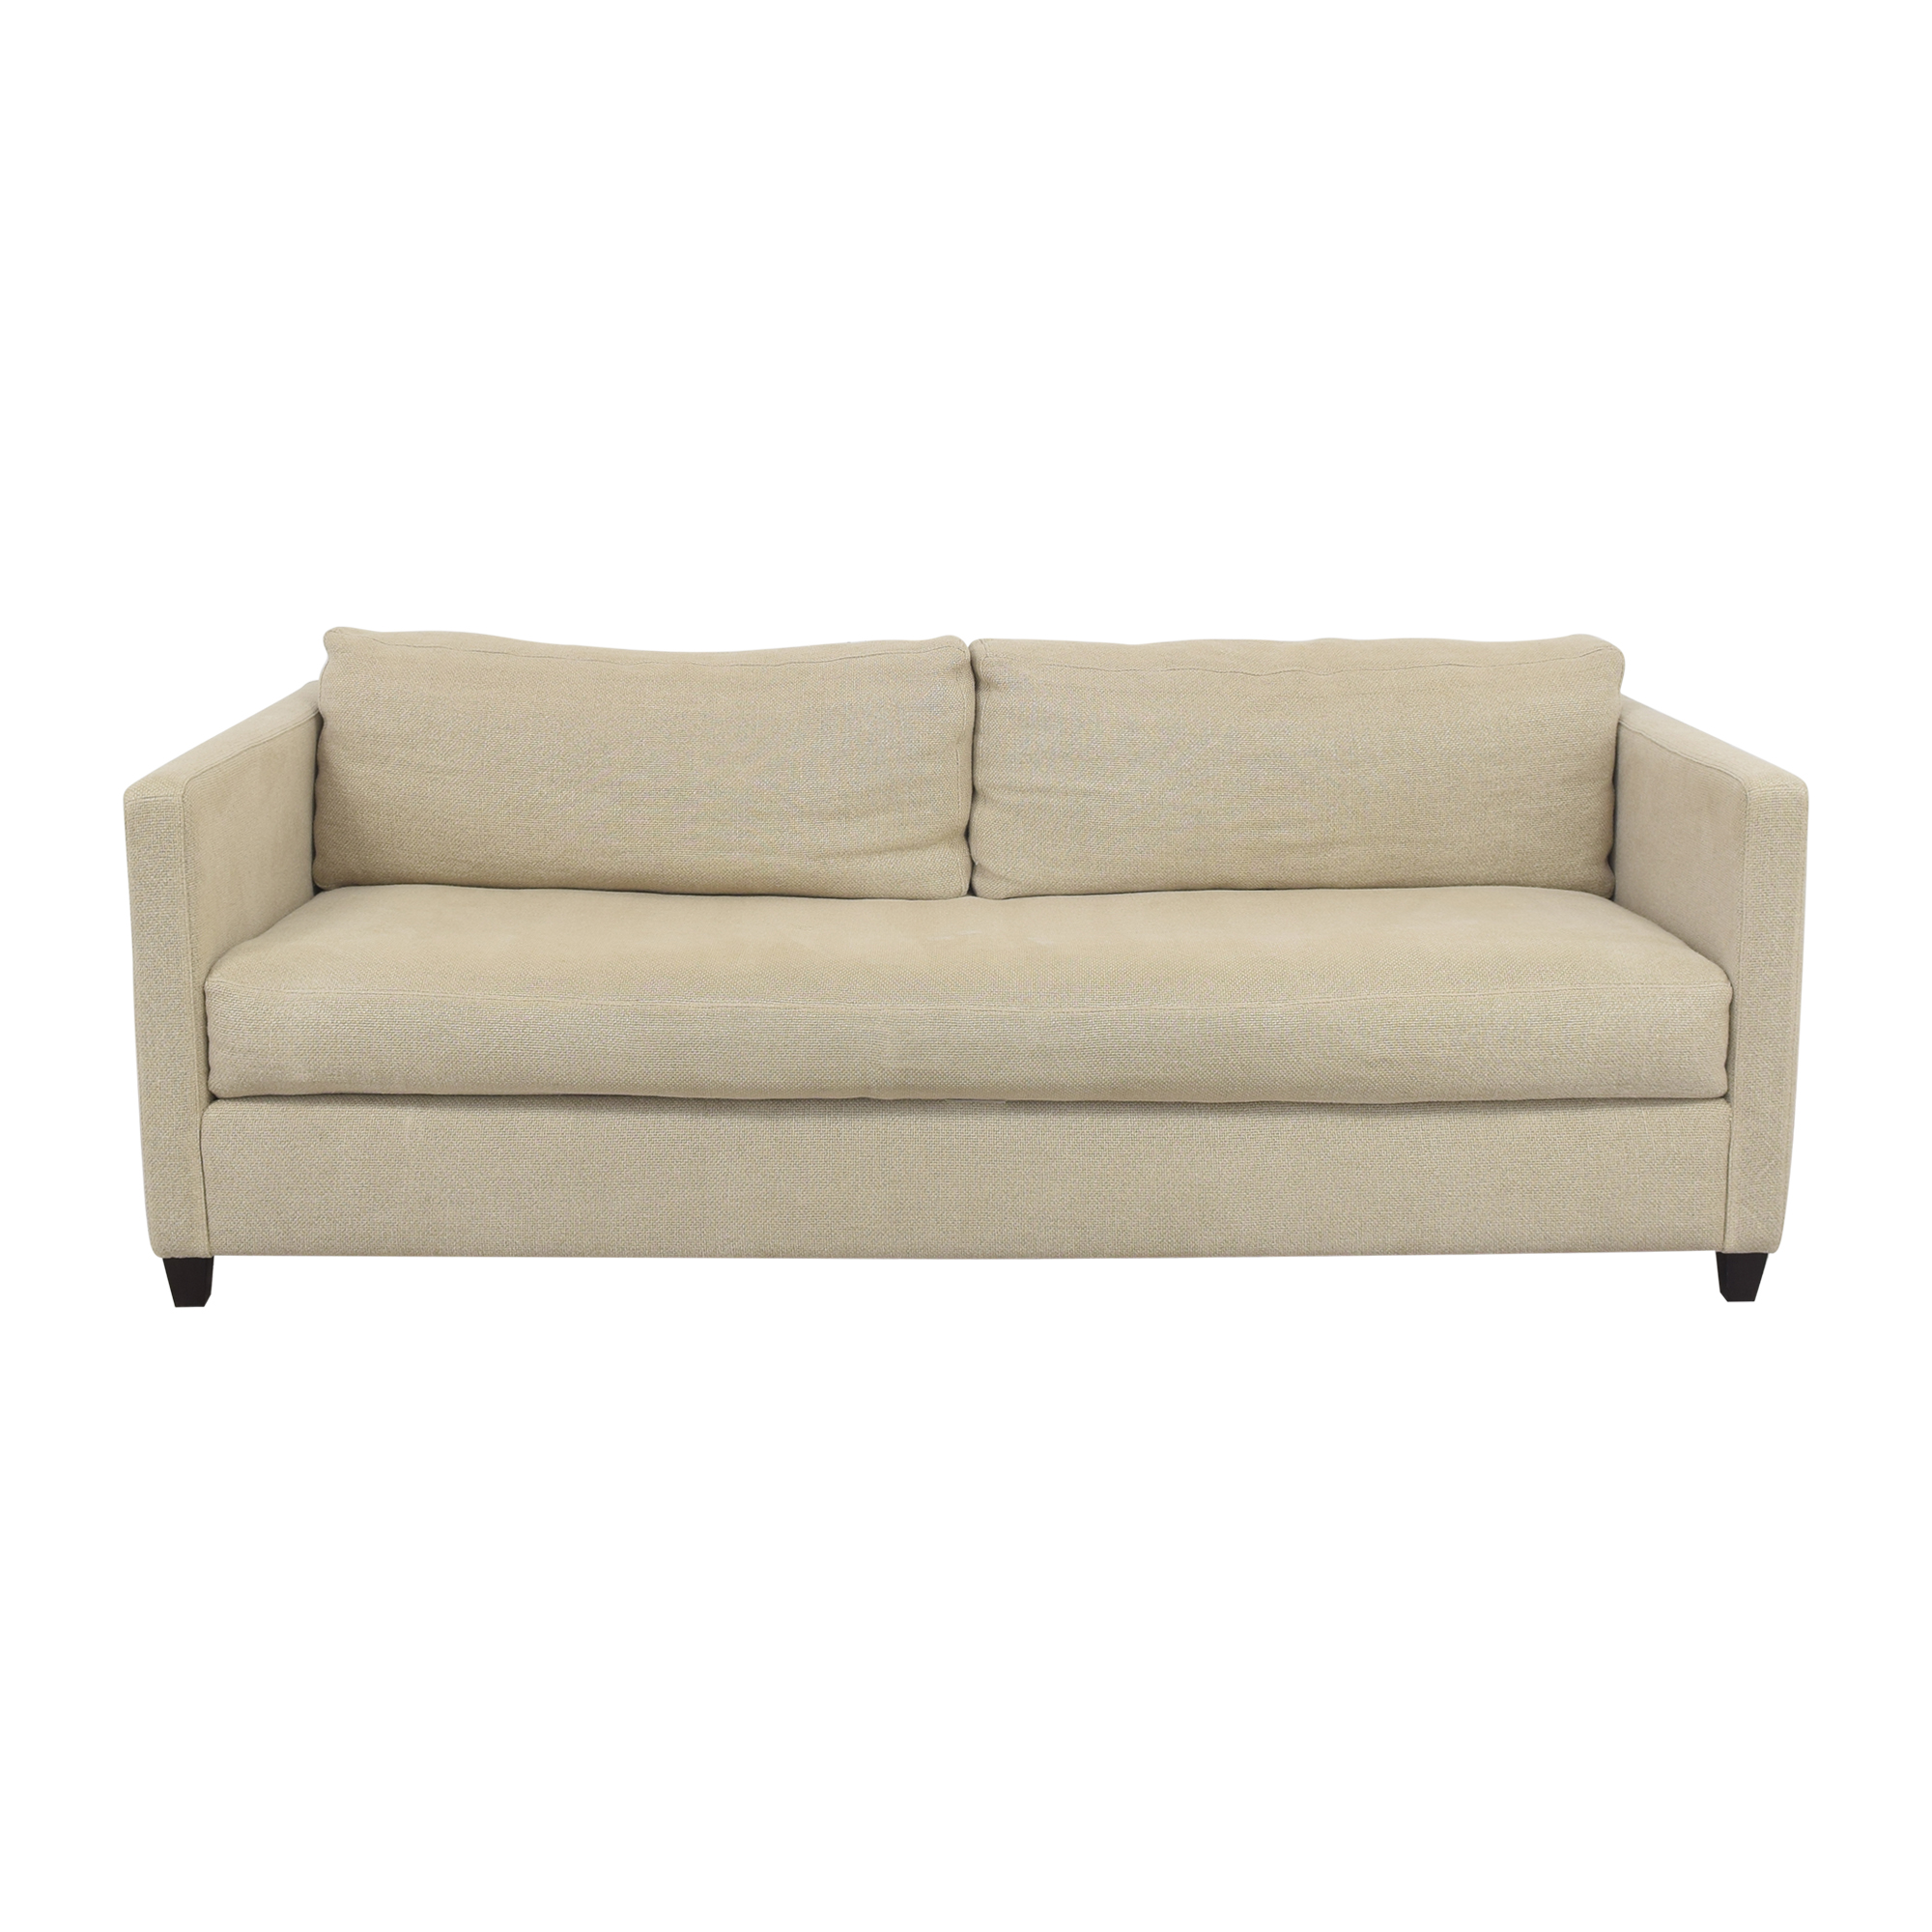 ABC Carpet & Home ABC Carpet & Home Contemporary Sofa ma